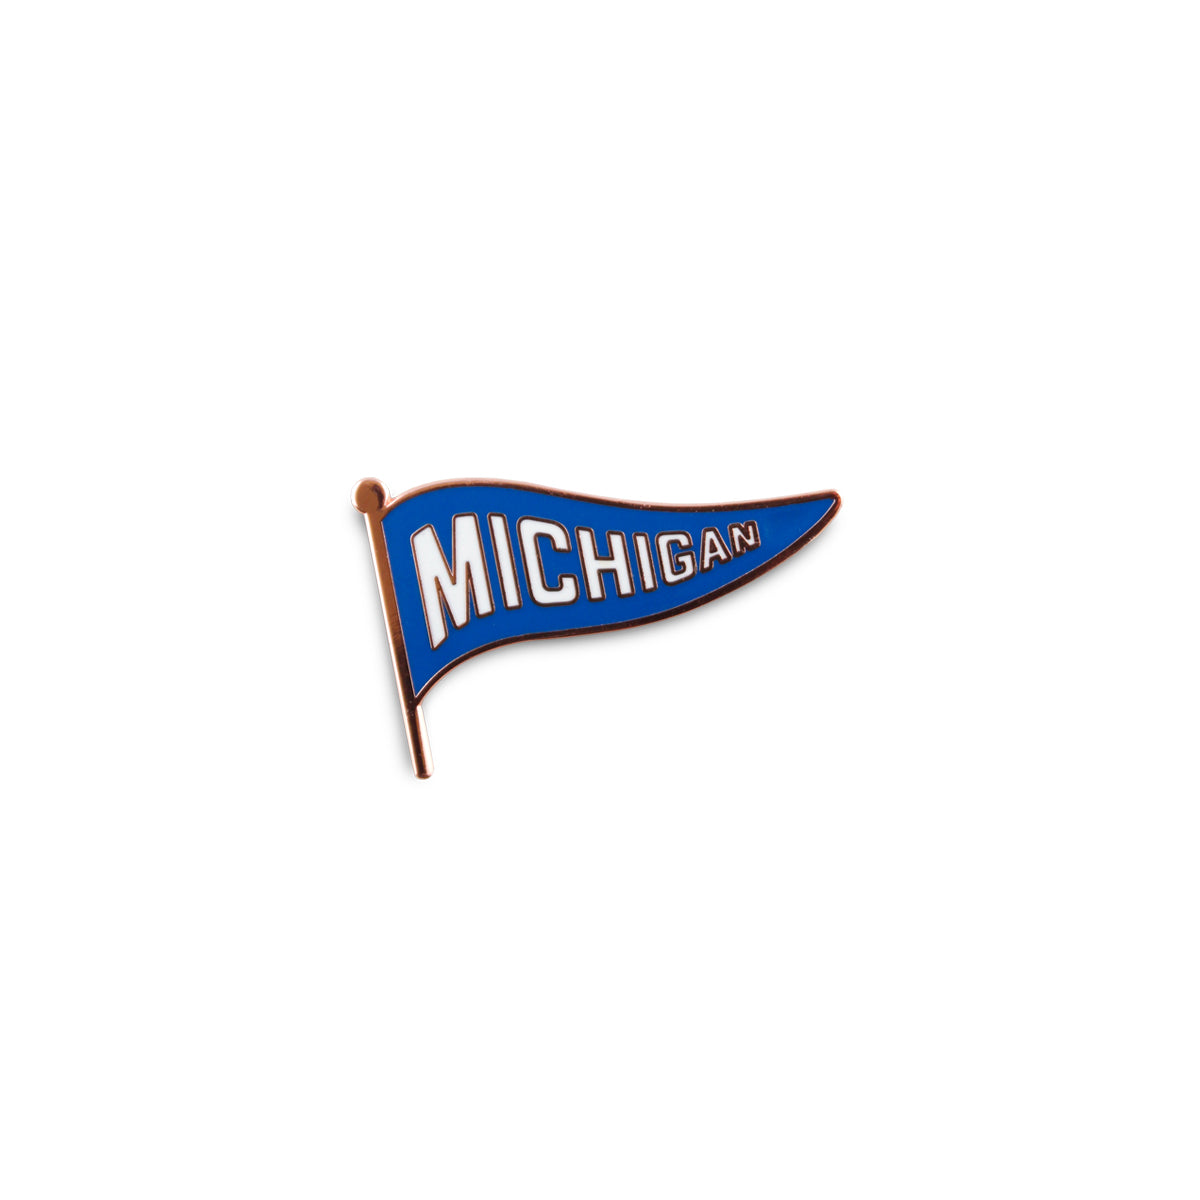 Michigan Pennant Enamel Pin - Blue